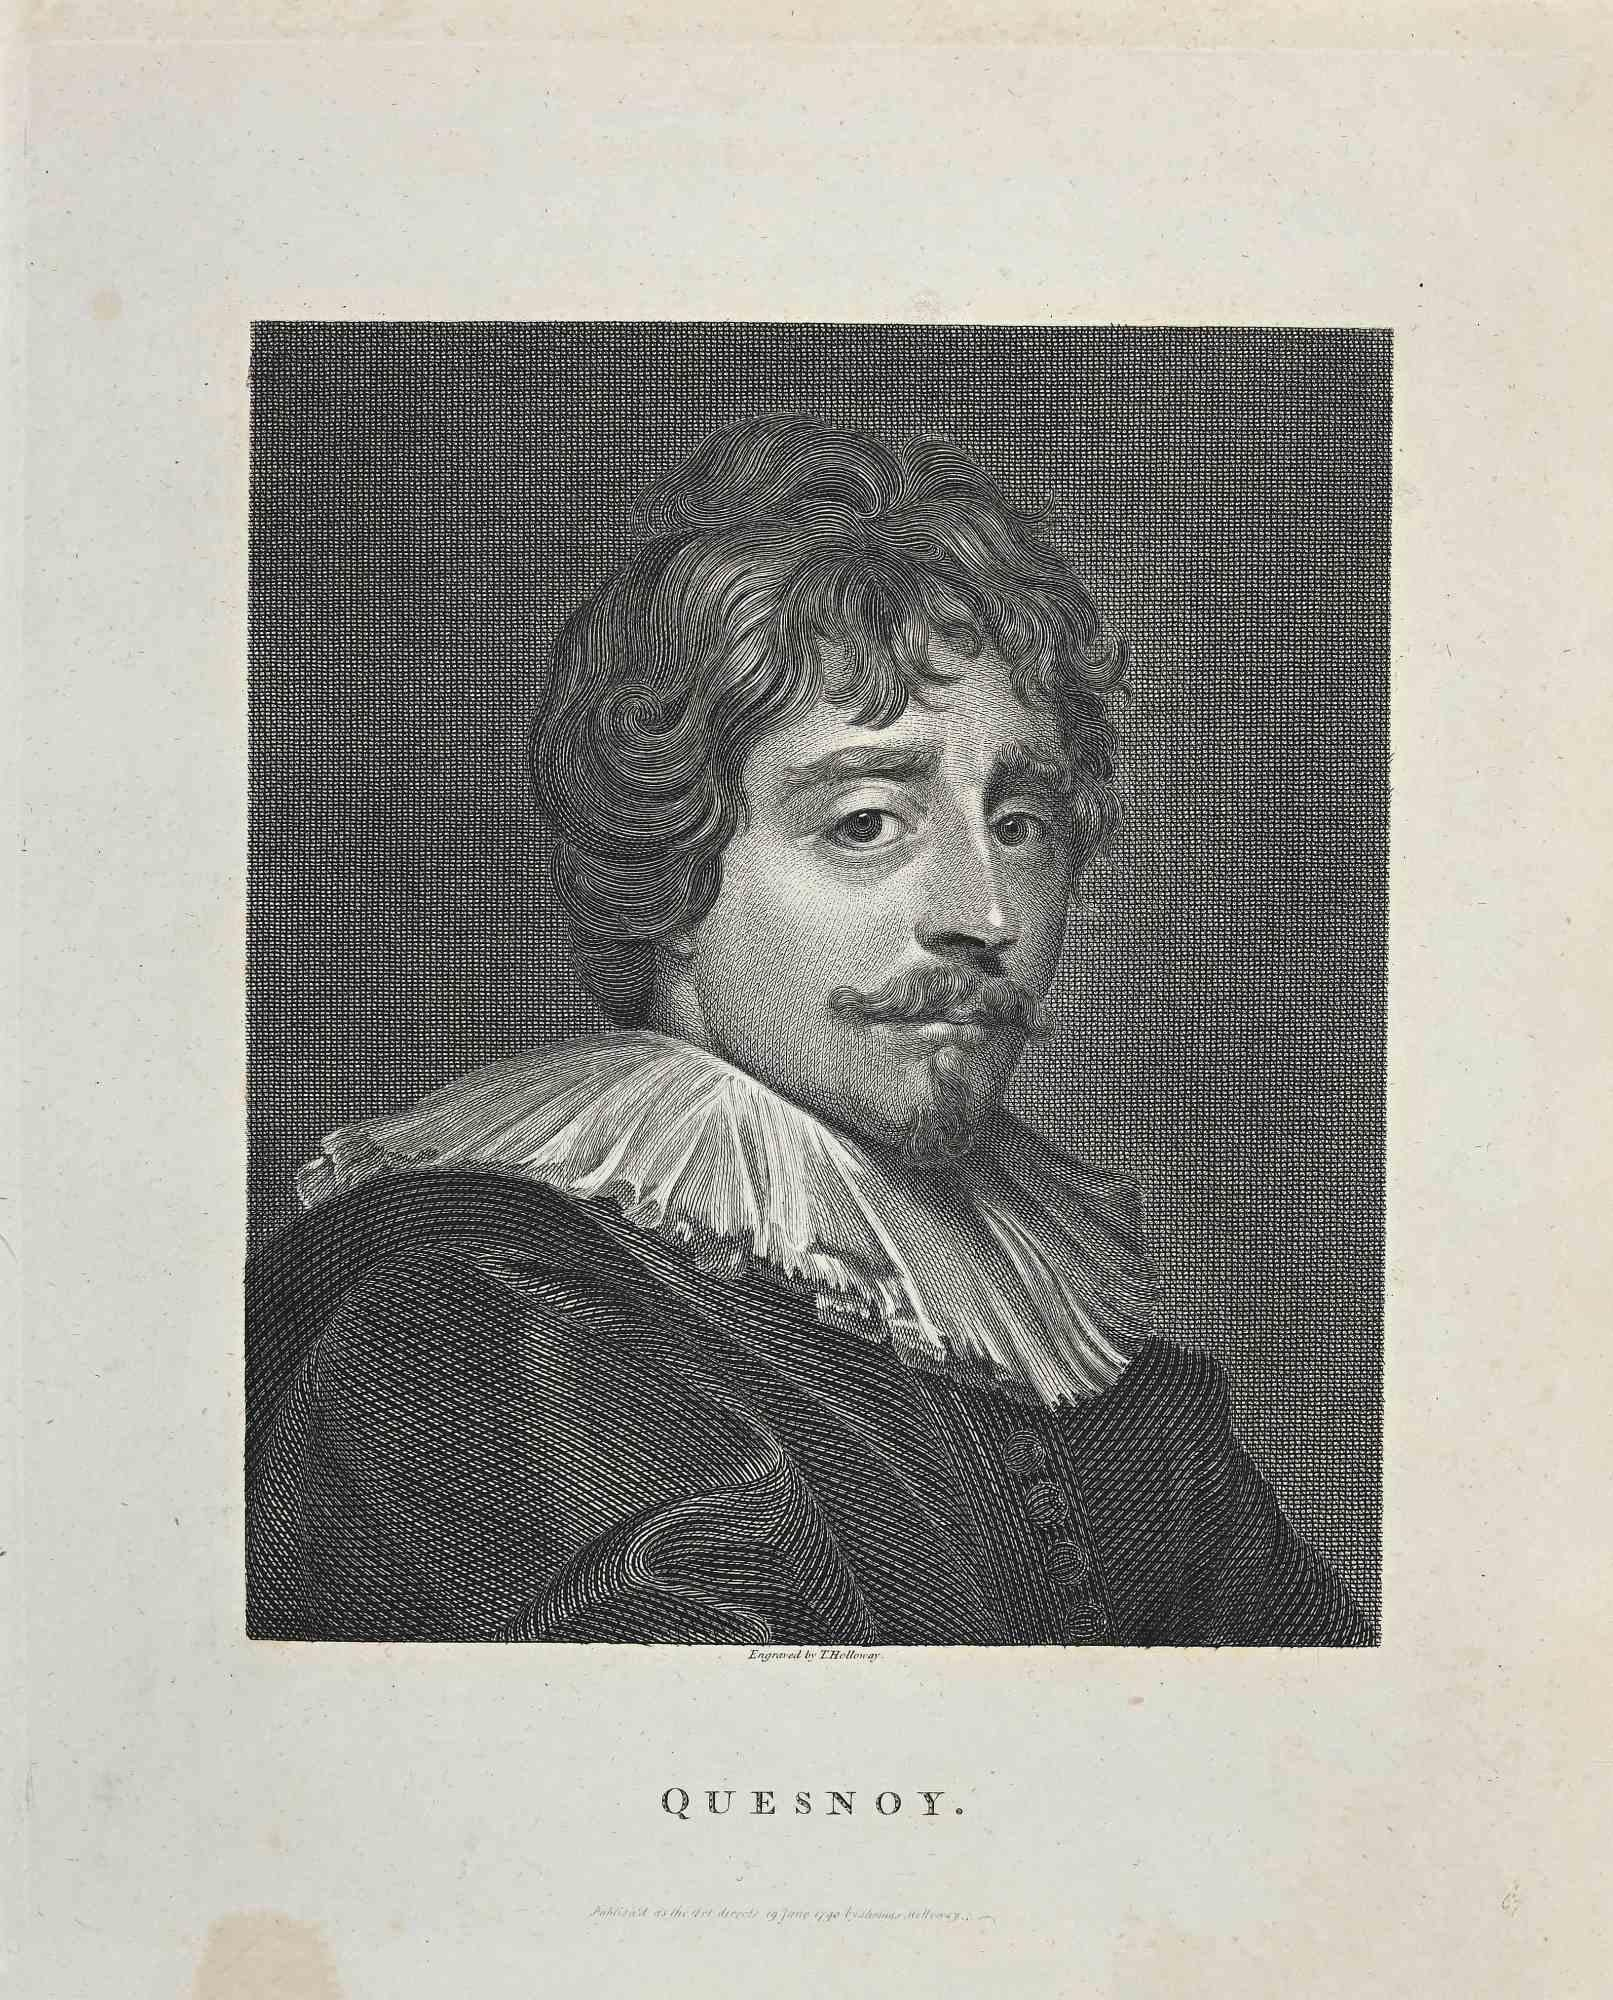 Portrait of Quesnoy - Original Etching by Thomas Holloway - 1810